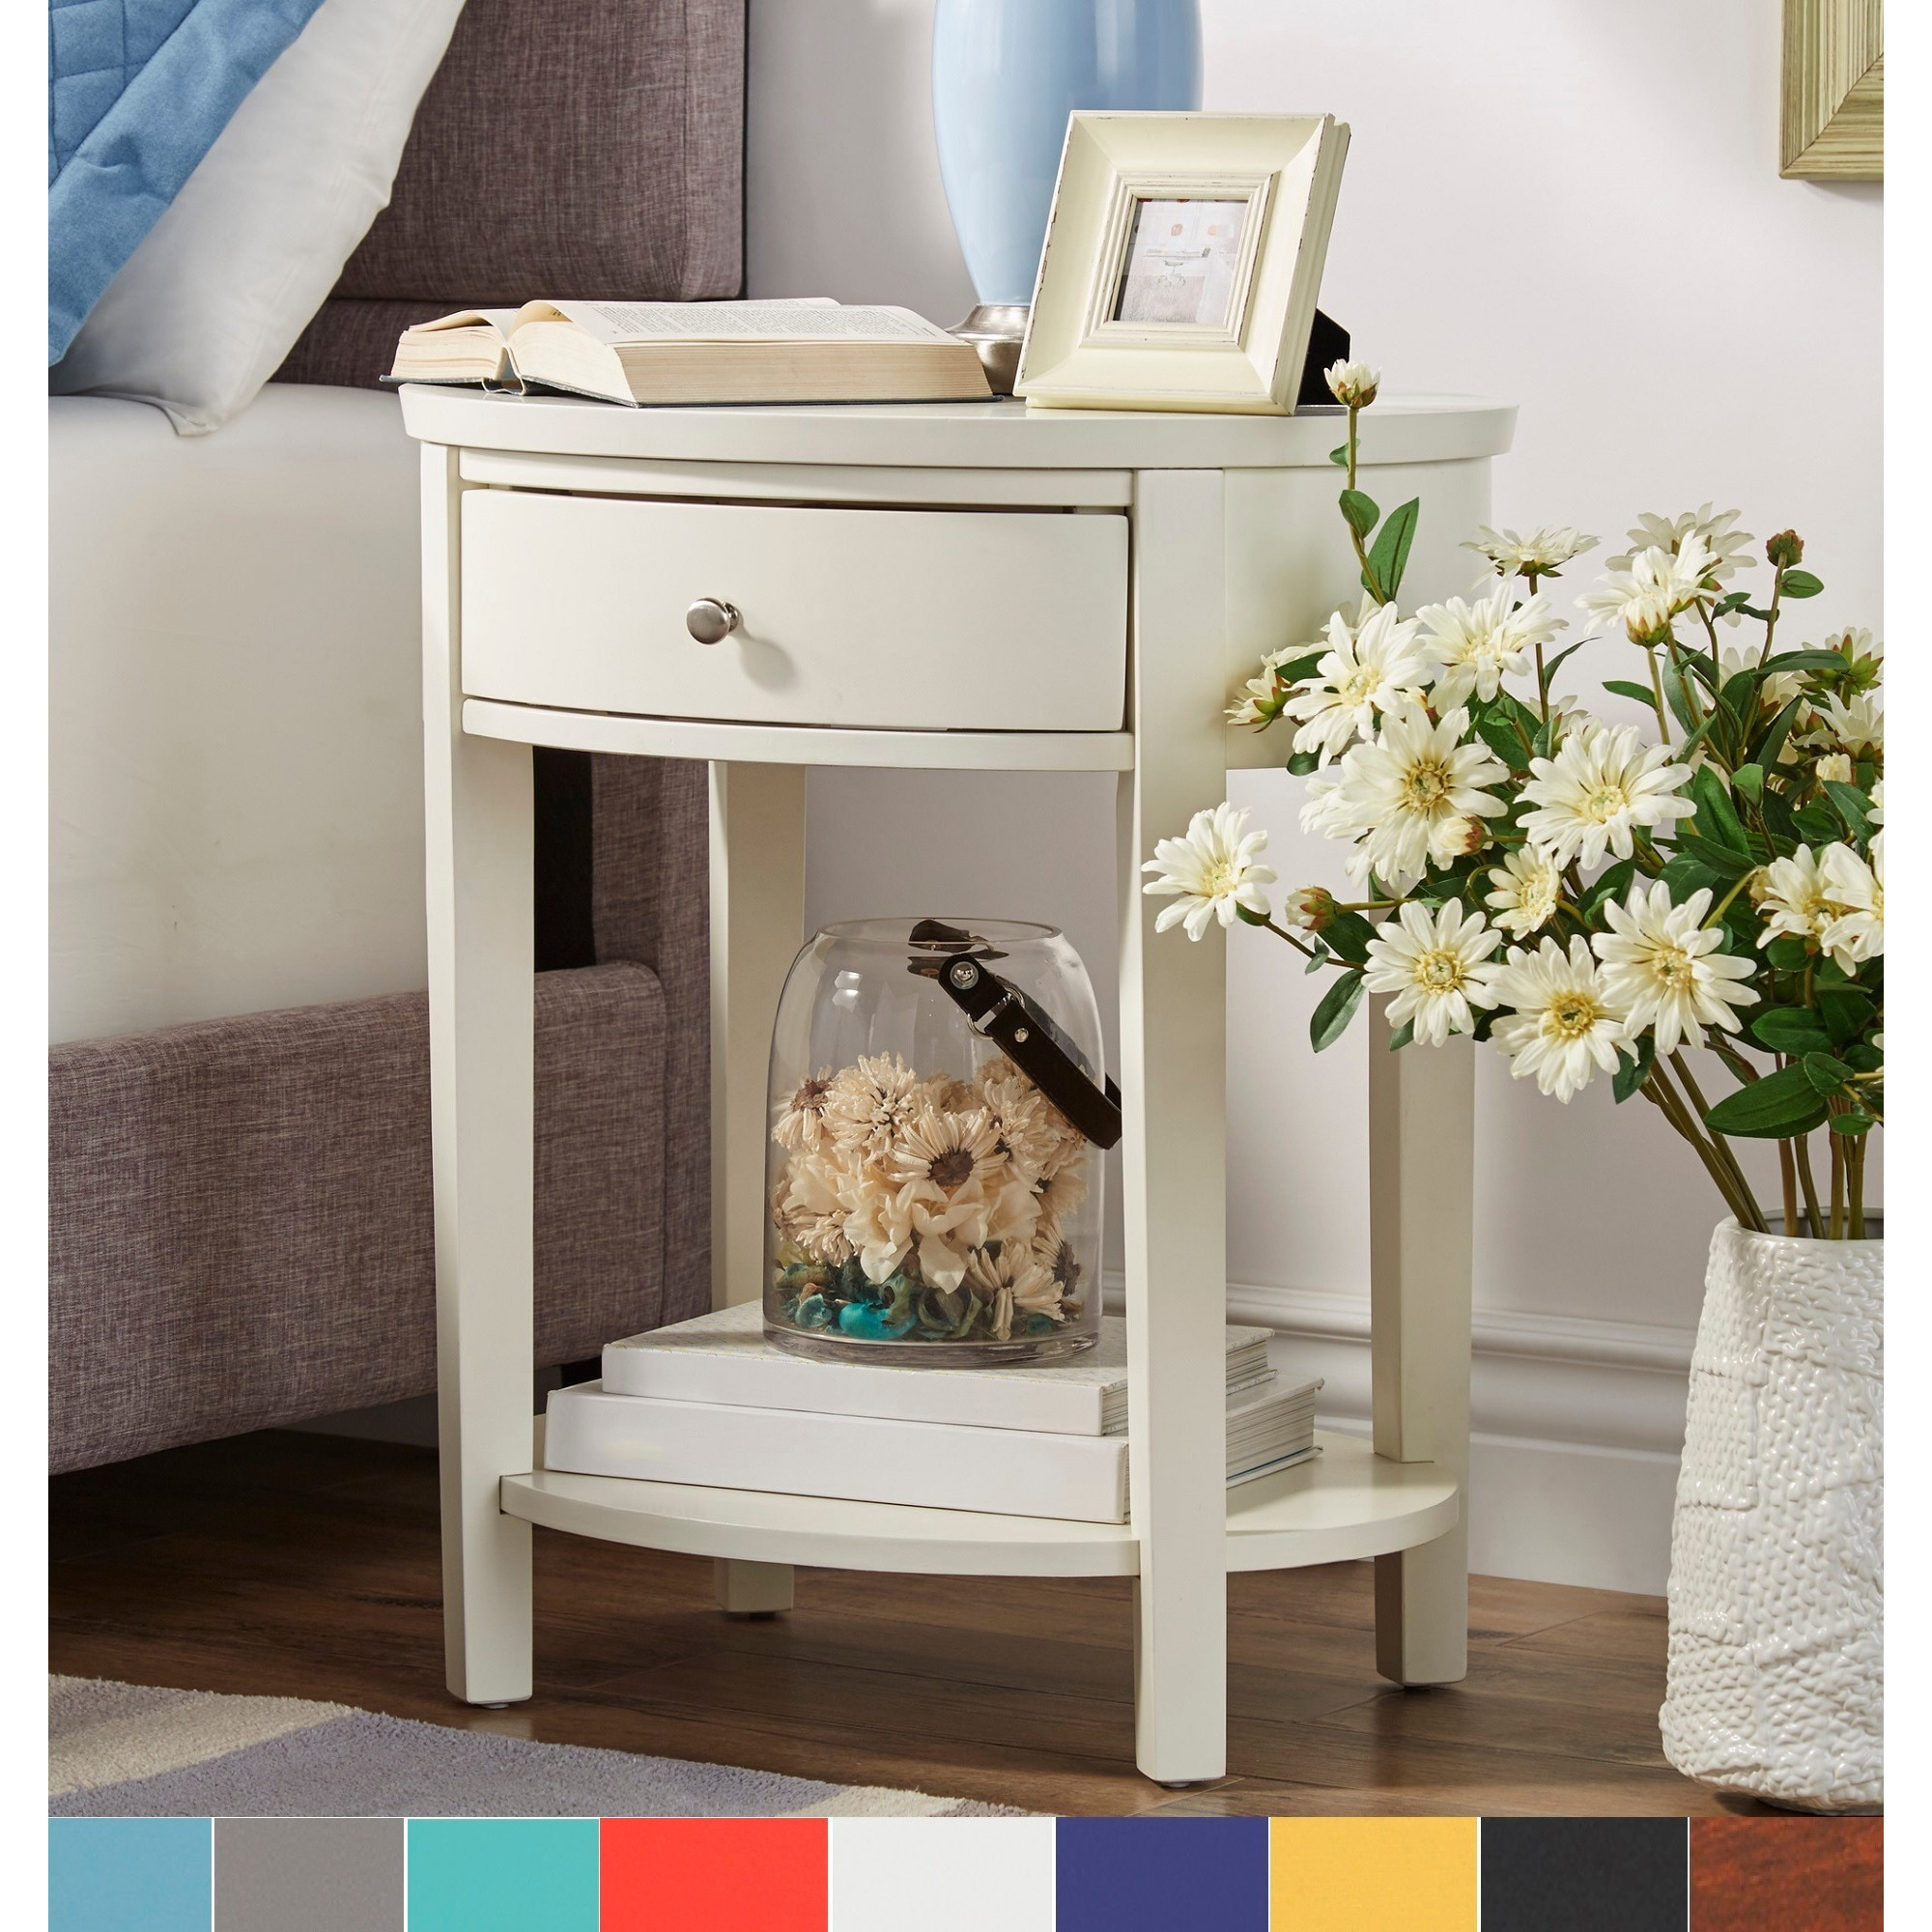 Fillmore-1-drawer-Oval-Wood-Shelf-Accent-End-Table-by-1-drawer thumbnail 8